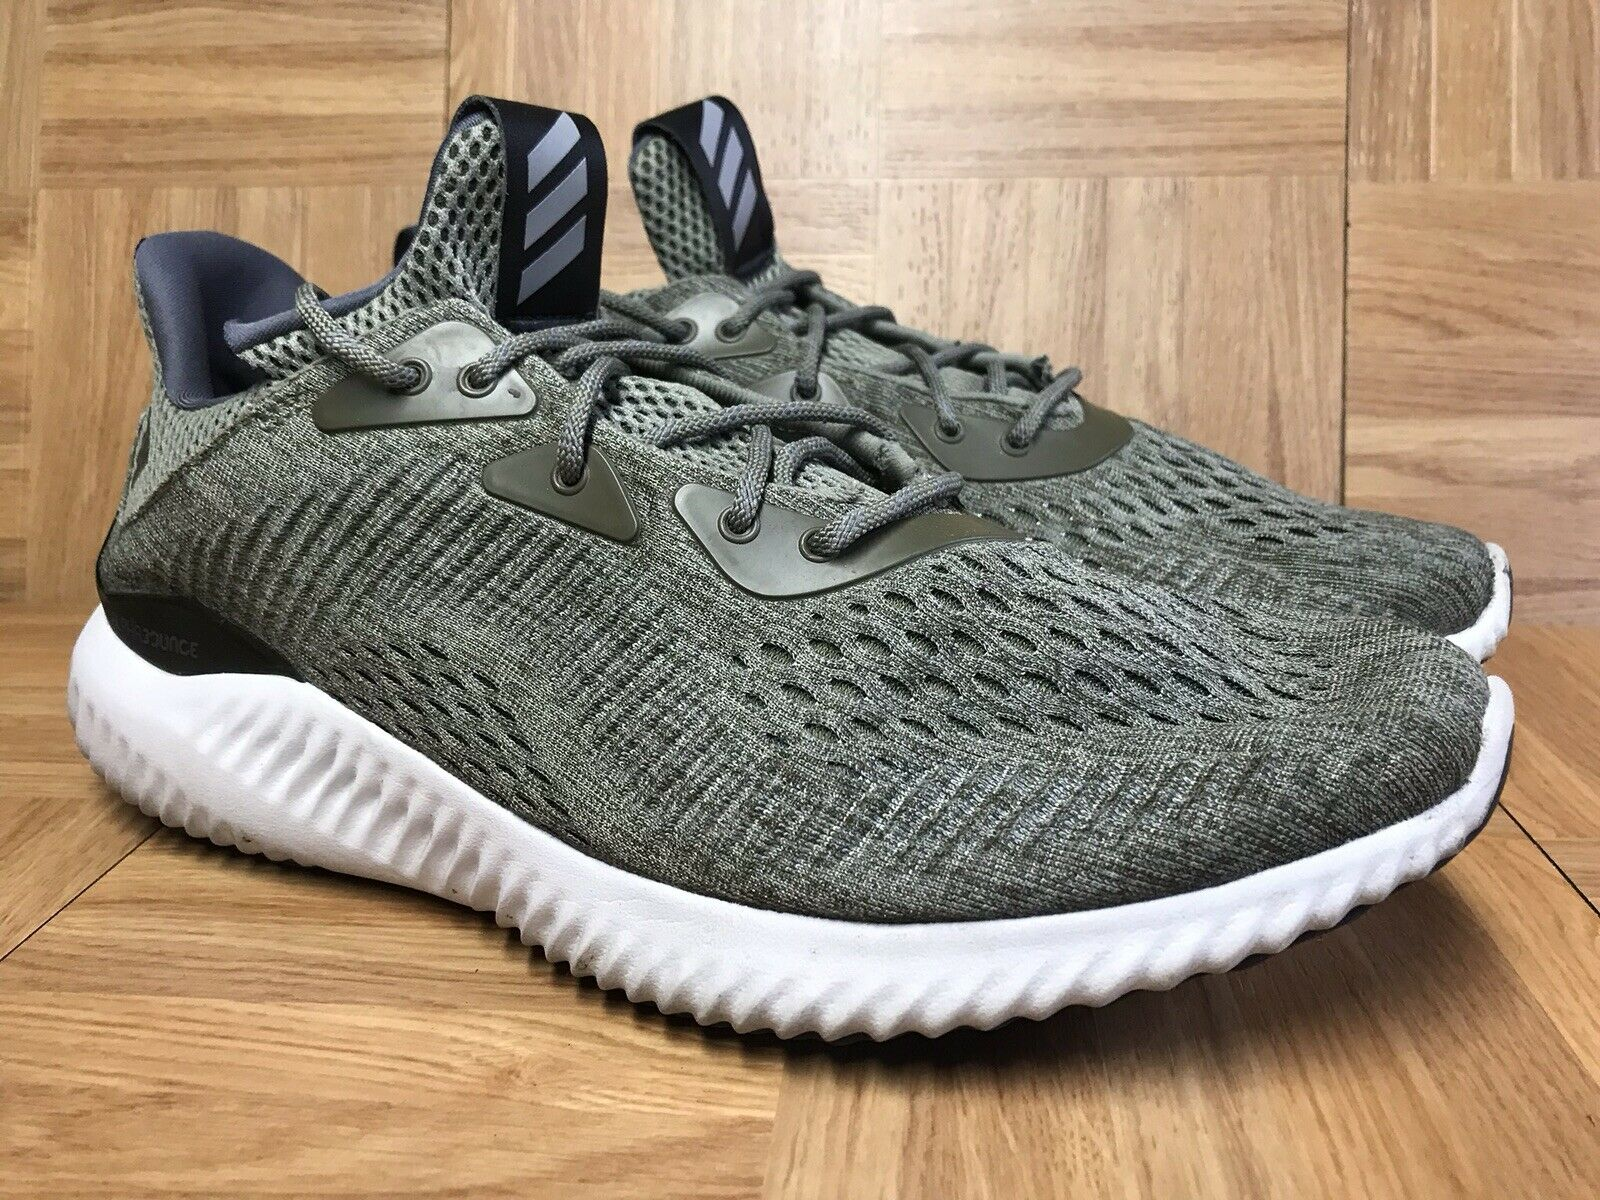 RARE Adidas Alphabounce Performance Running shoes Olive Army Green SZ 11 shoes